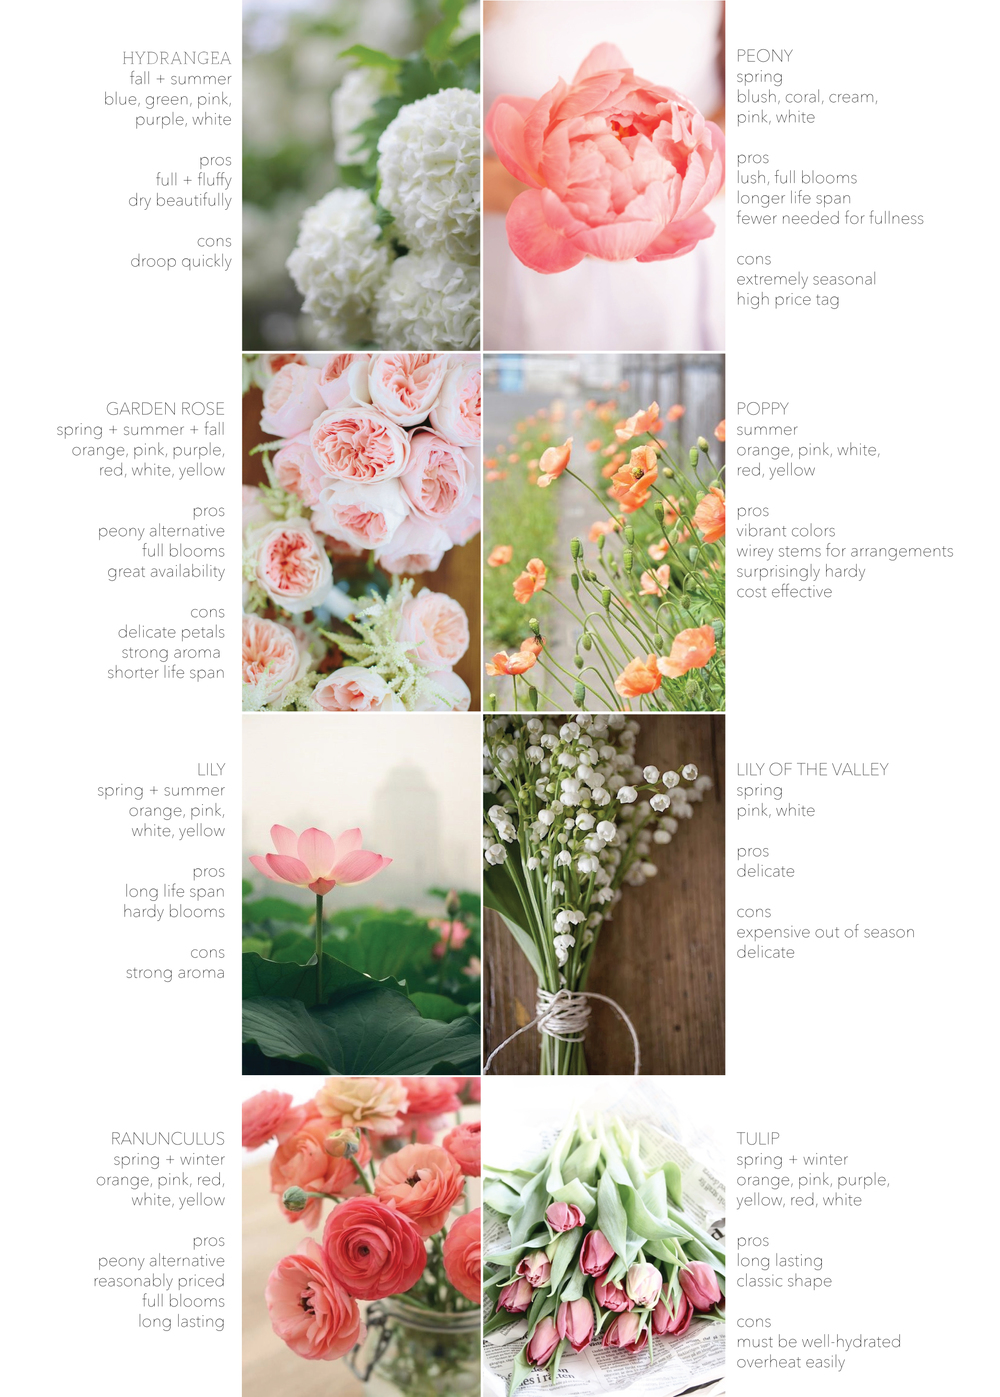 hydrangea, peony, garden rose, poppy, lily, lily of the valley, ranunculus, tulip